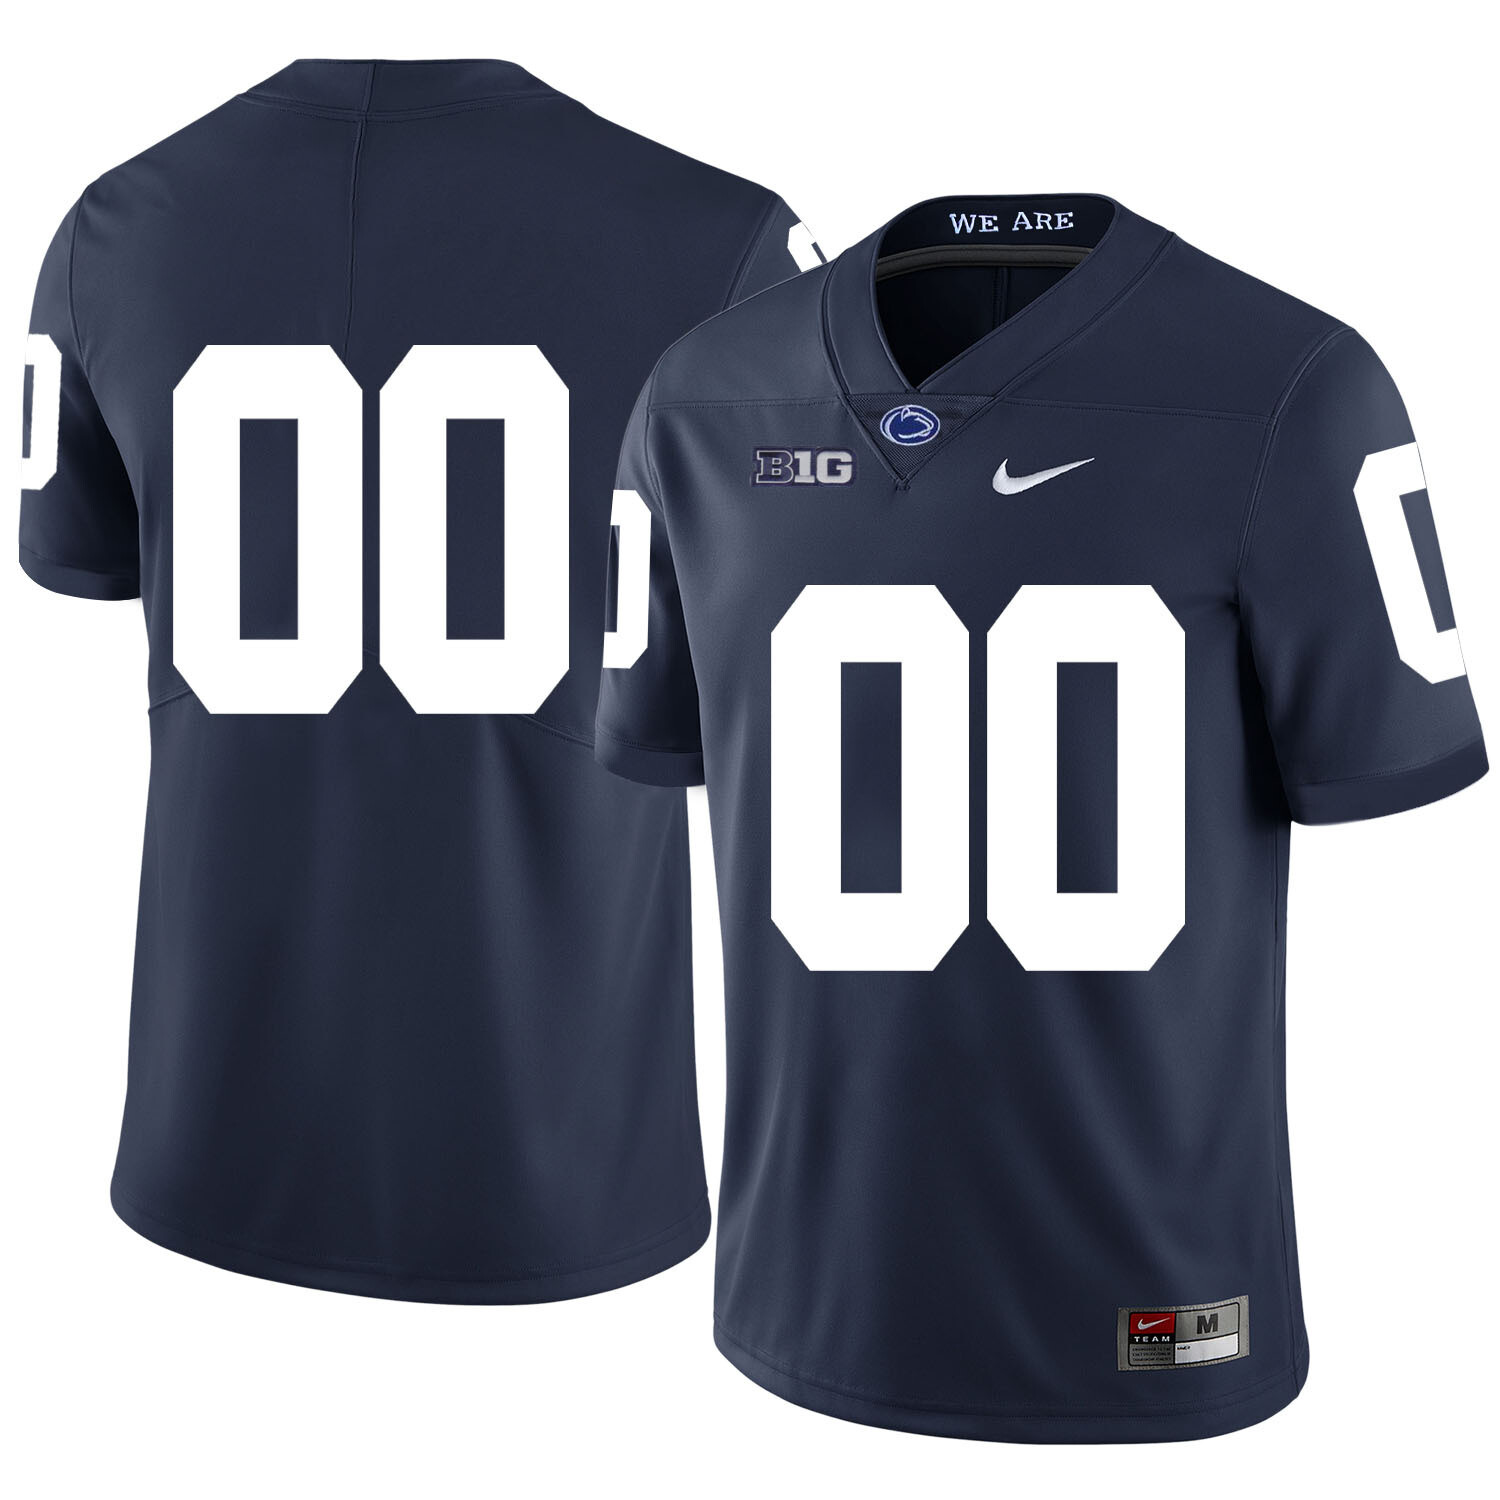 Penn State Nittany Lions Custom Name Number Football Jersey Dark Blue With Patch